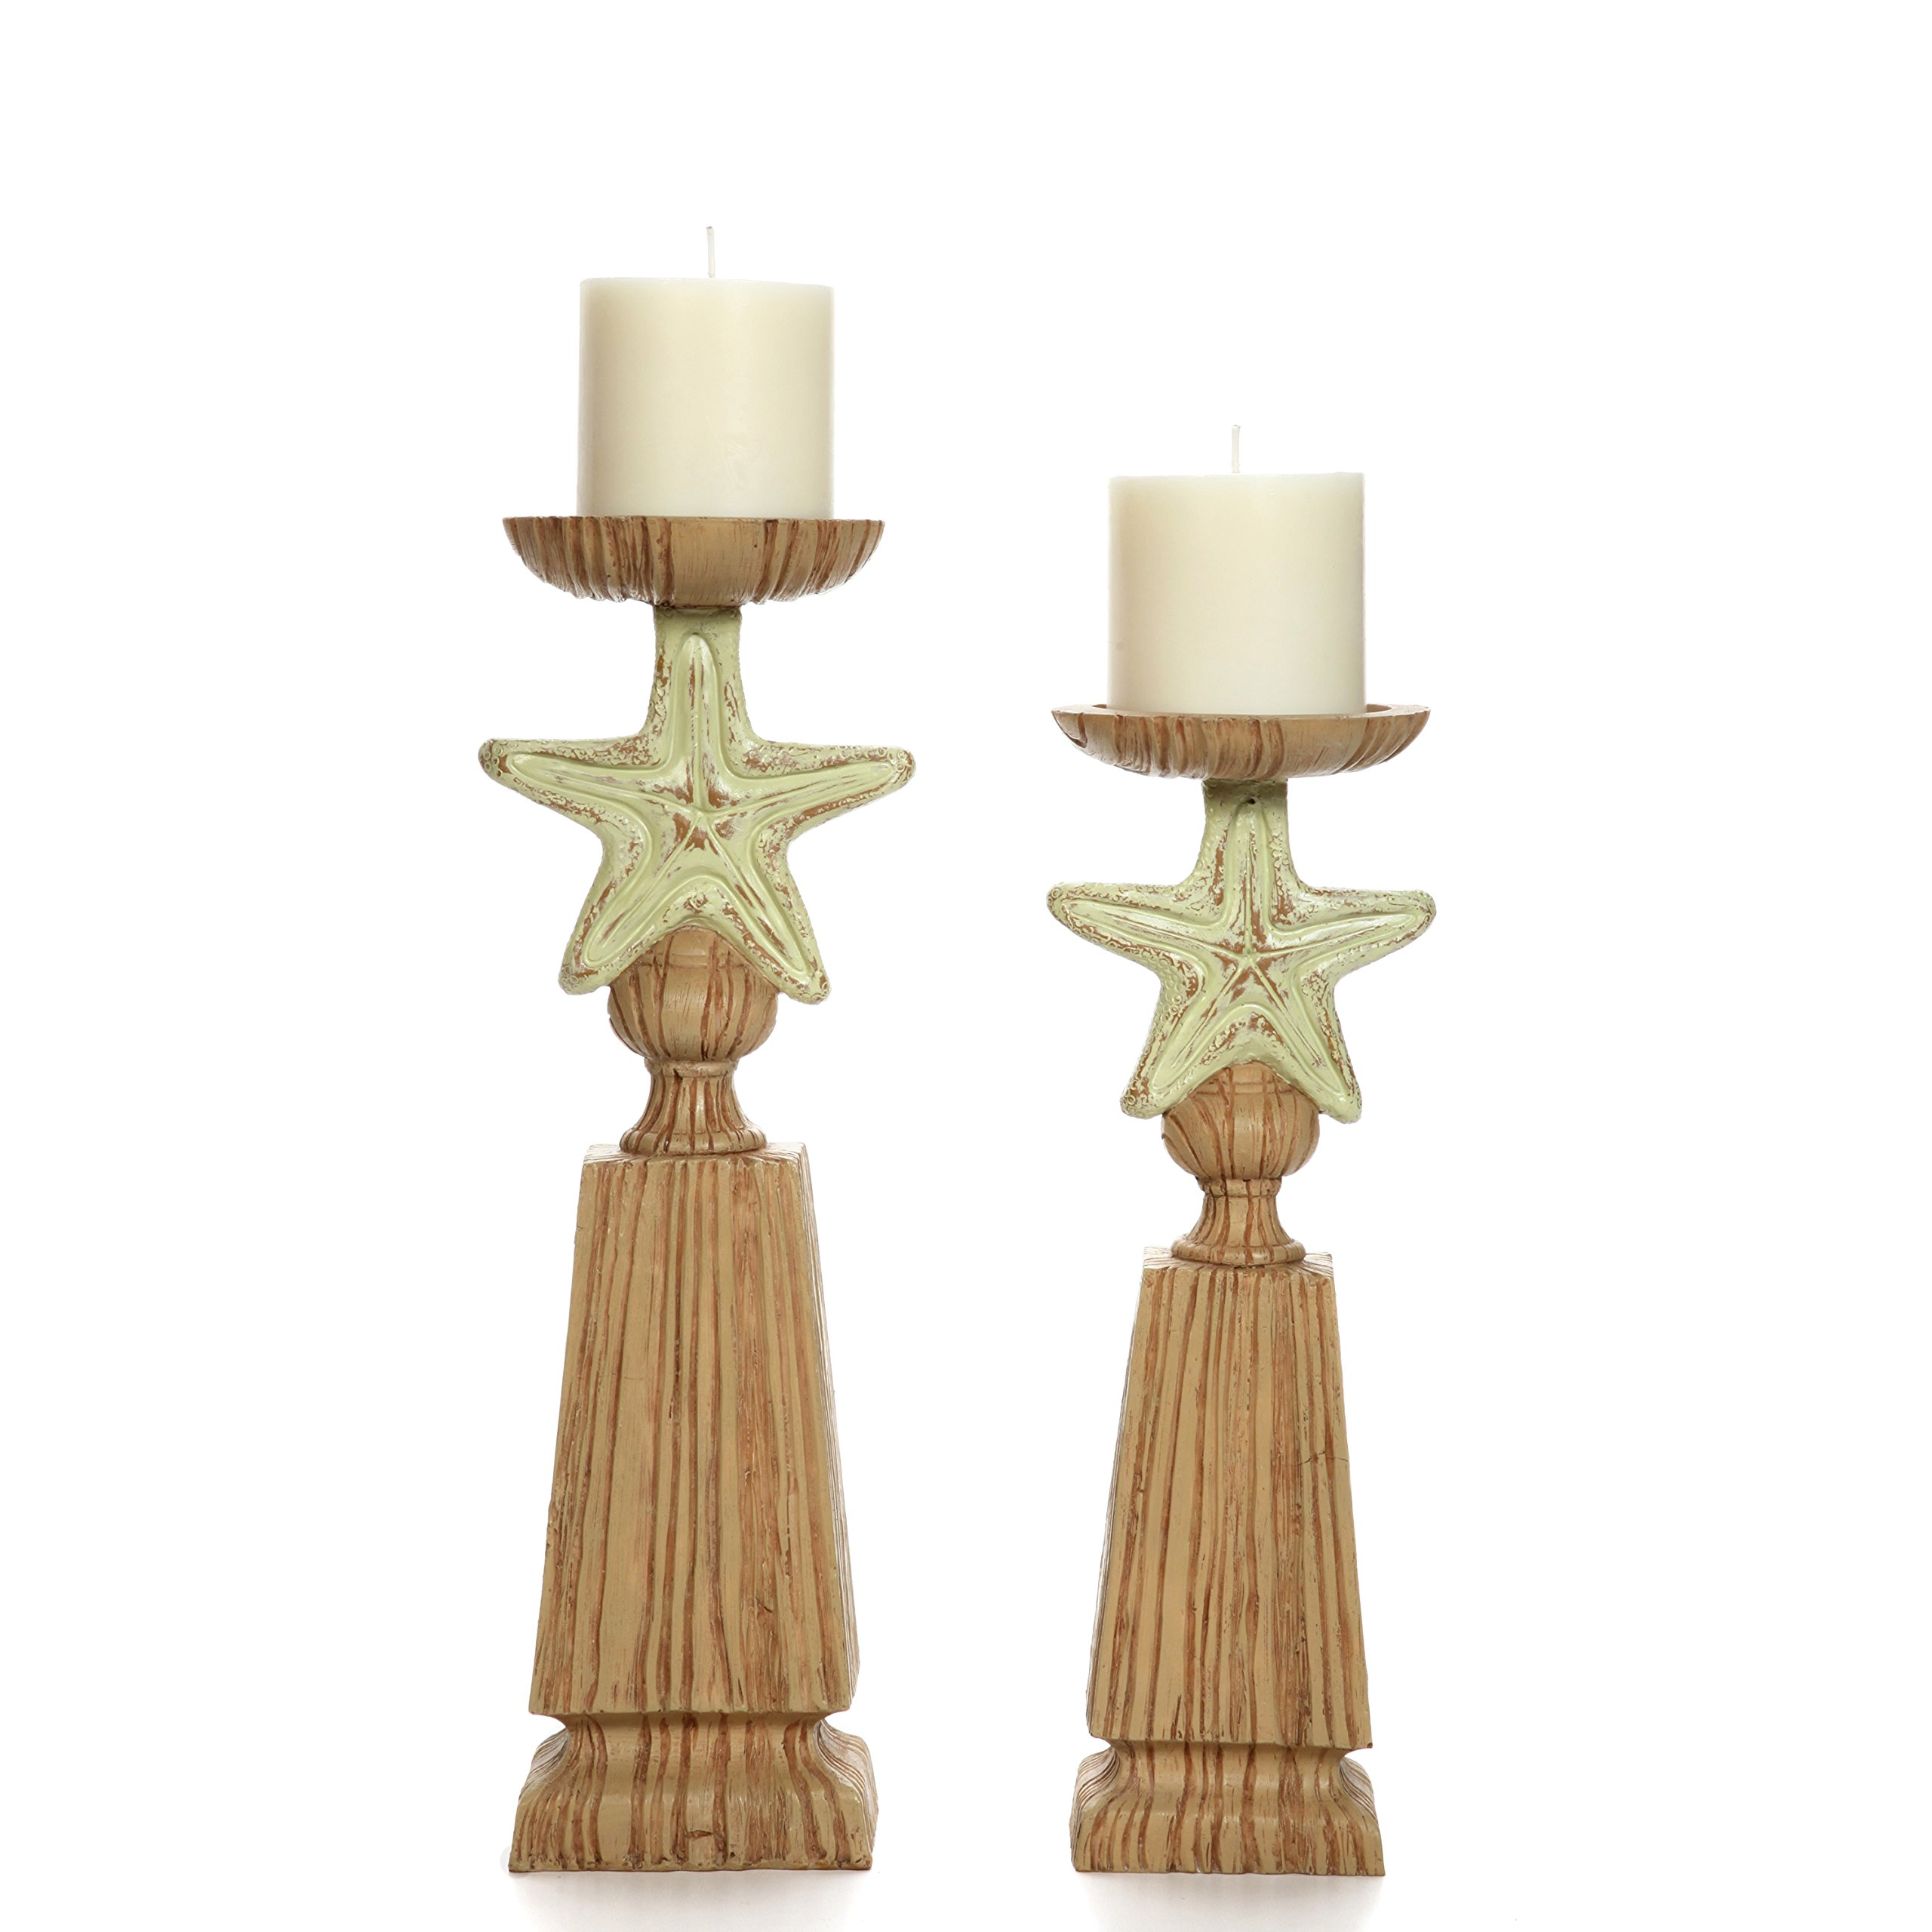 Hosley Set of 2 Nautical LED Candle Pillar Holder, 14'' & 12'' High, Resin. Ideal Gifts for Den, Dorm, Wedding, Party, Home/Office, Spa, Aromatherapy, Pillar/Votive Candle Gardens P2